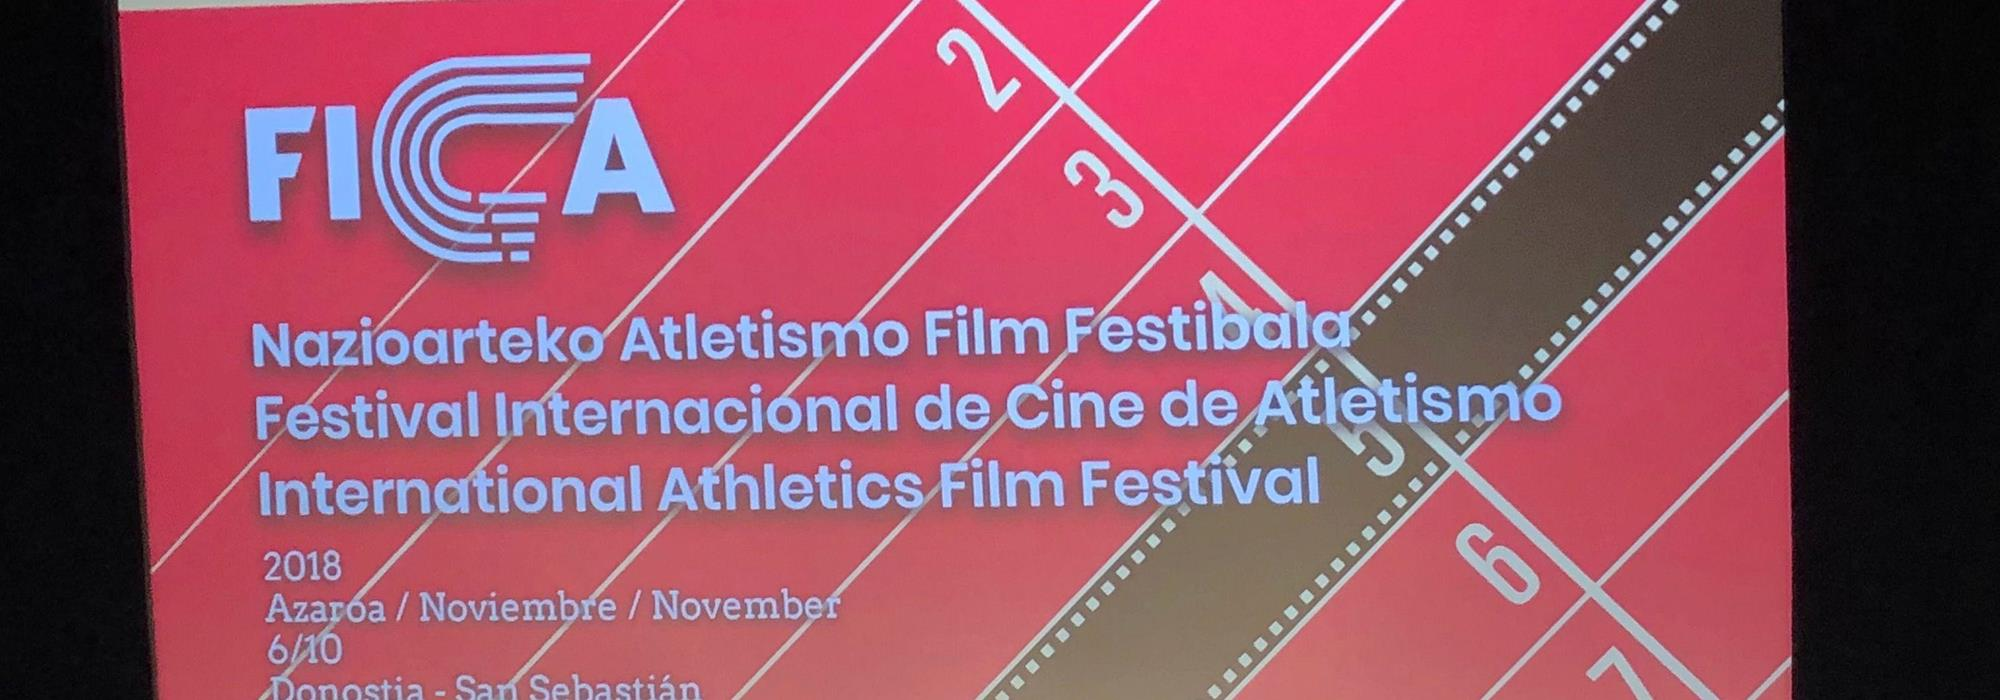 During the FICA film festival (organisers)